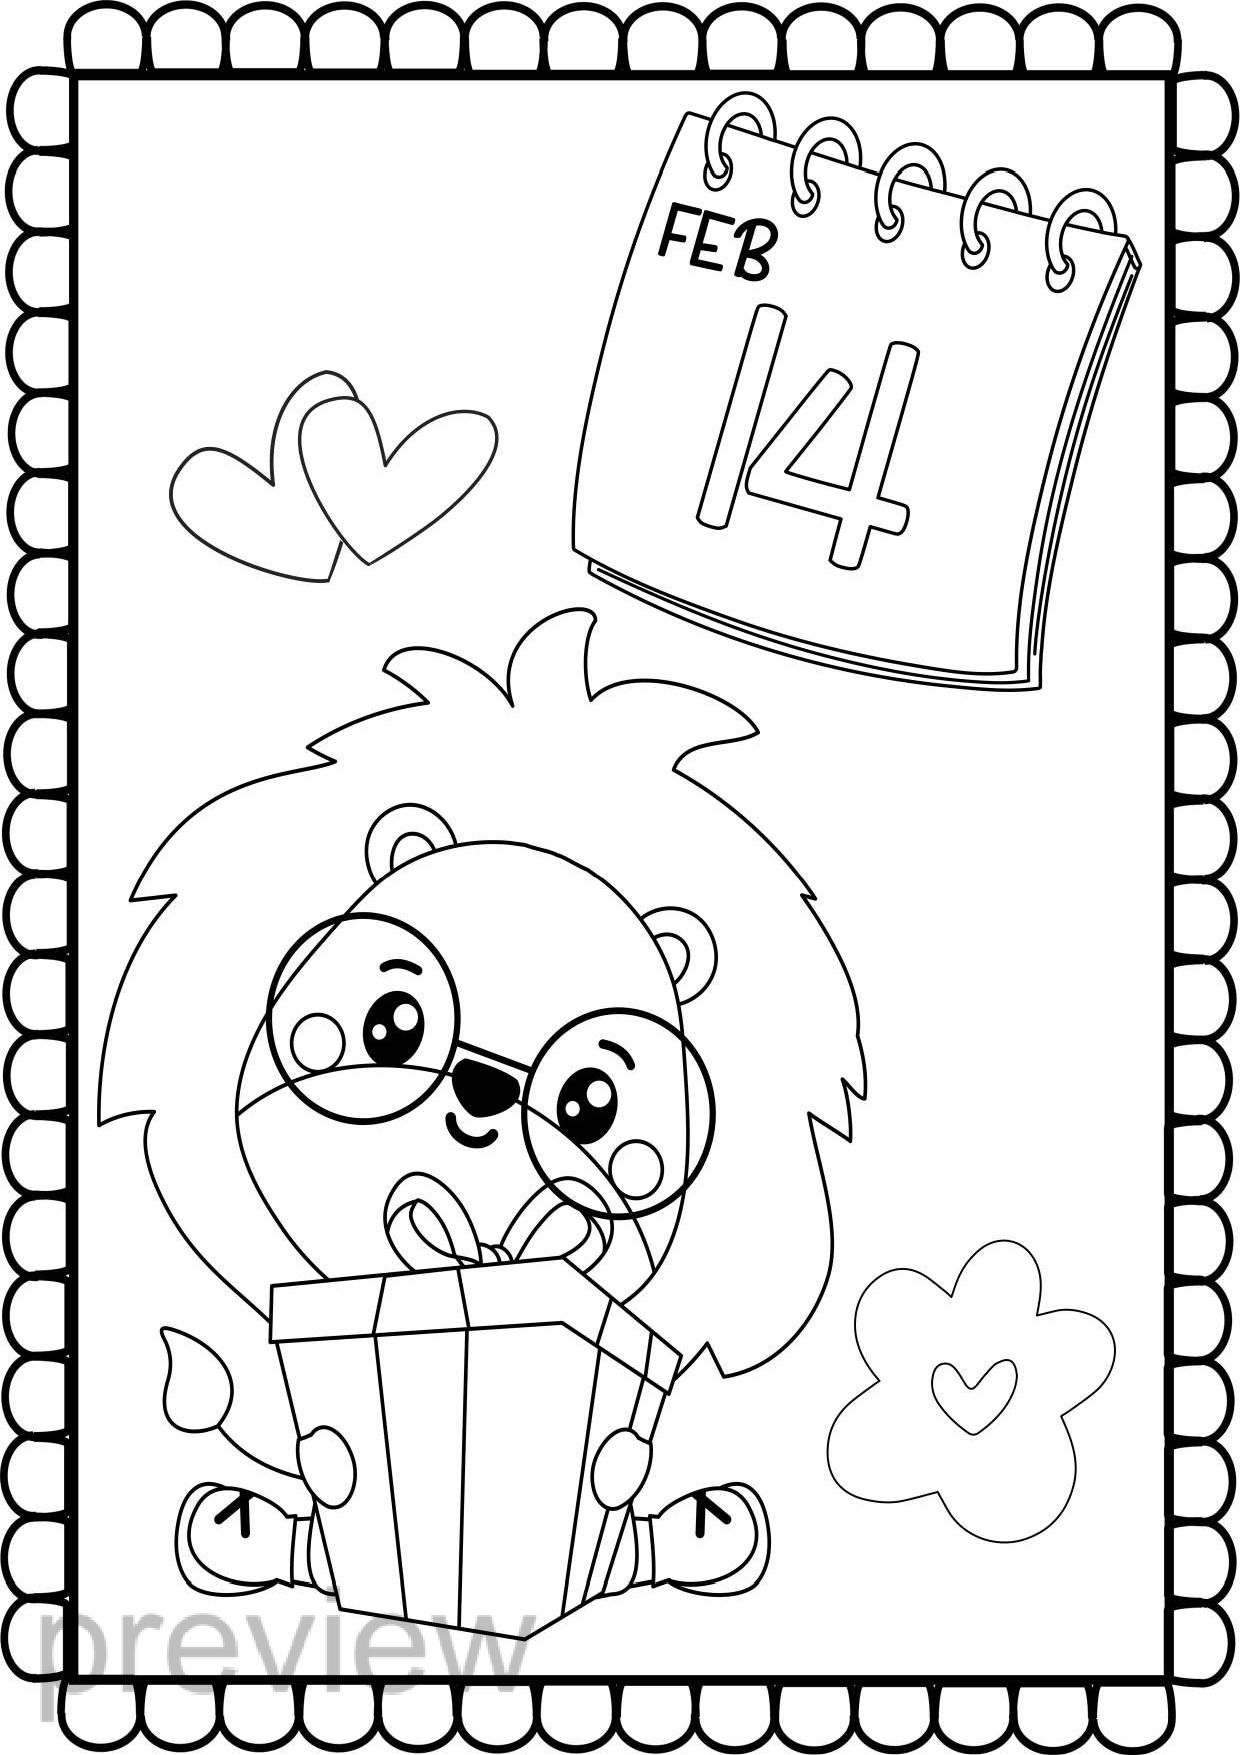 29+ Disney valentines day coloring pages pdf information